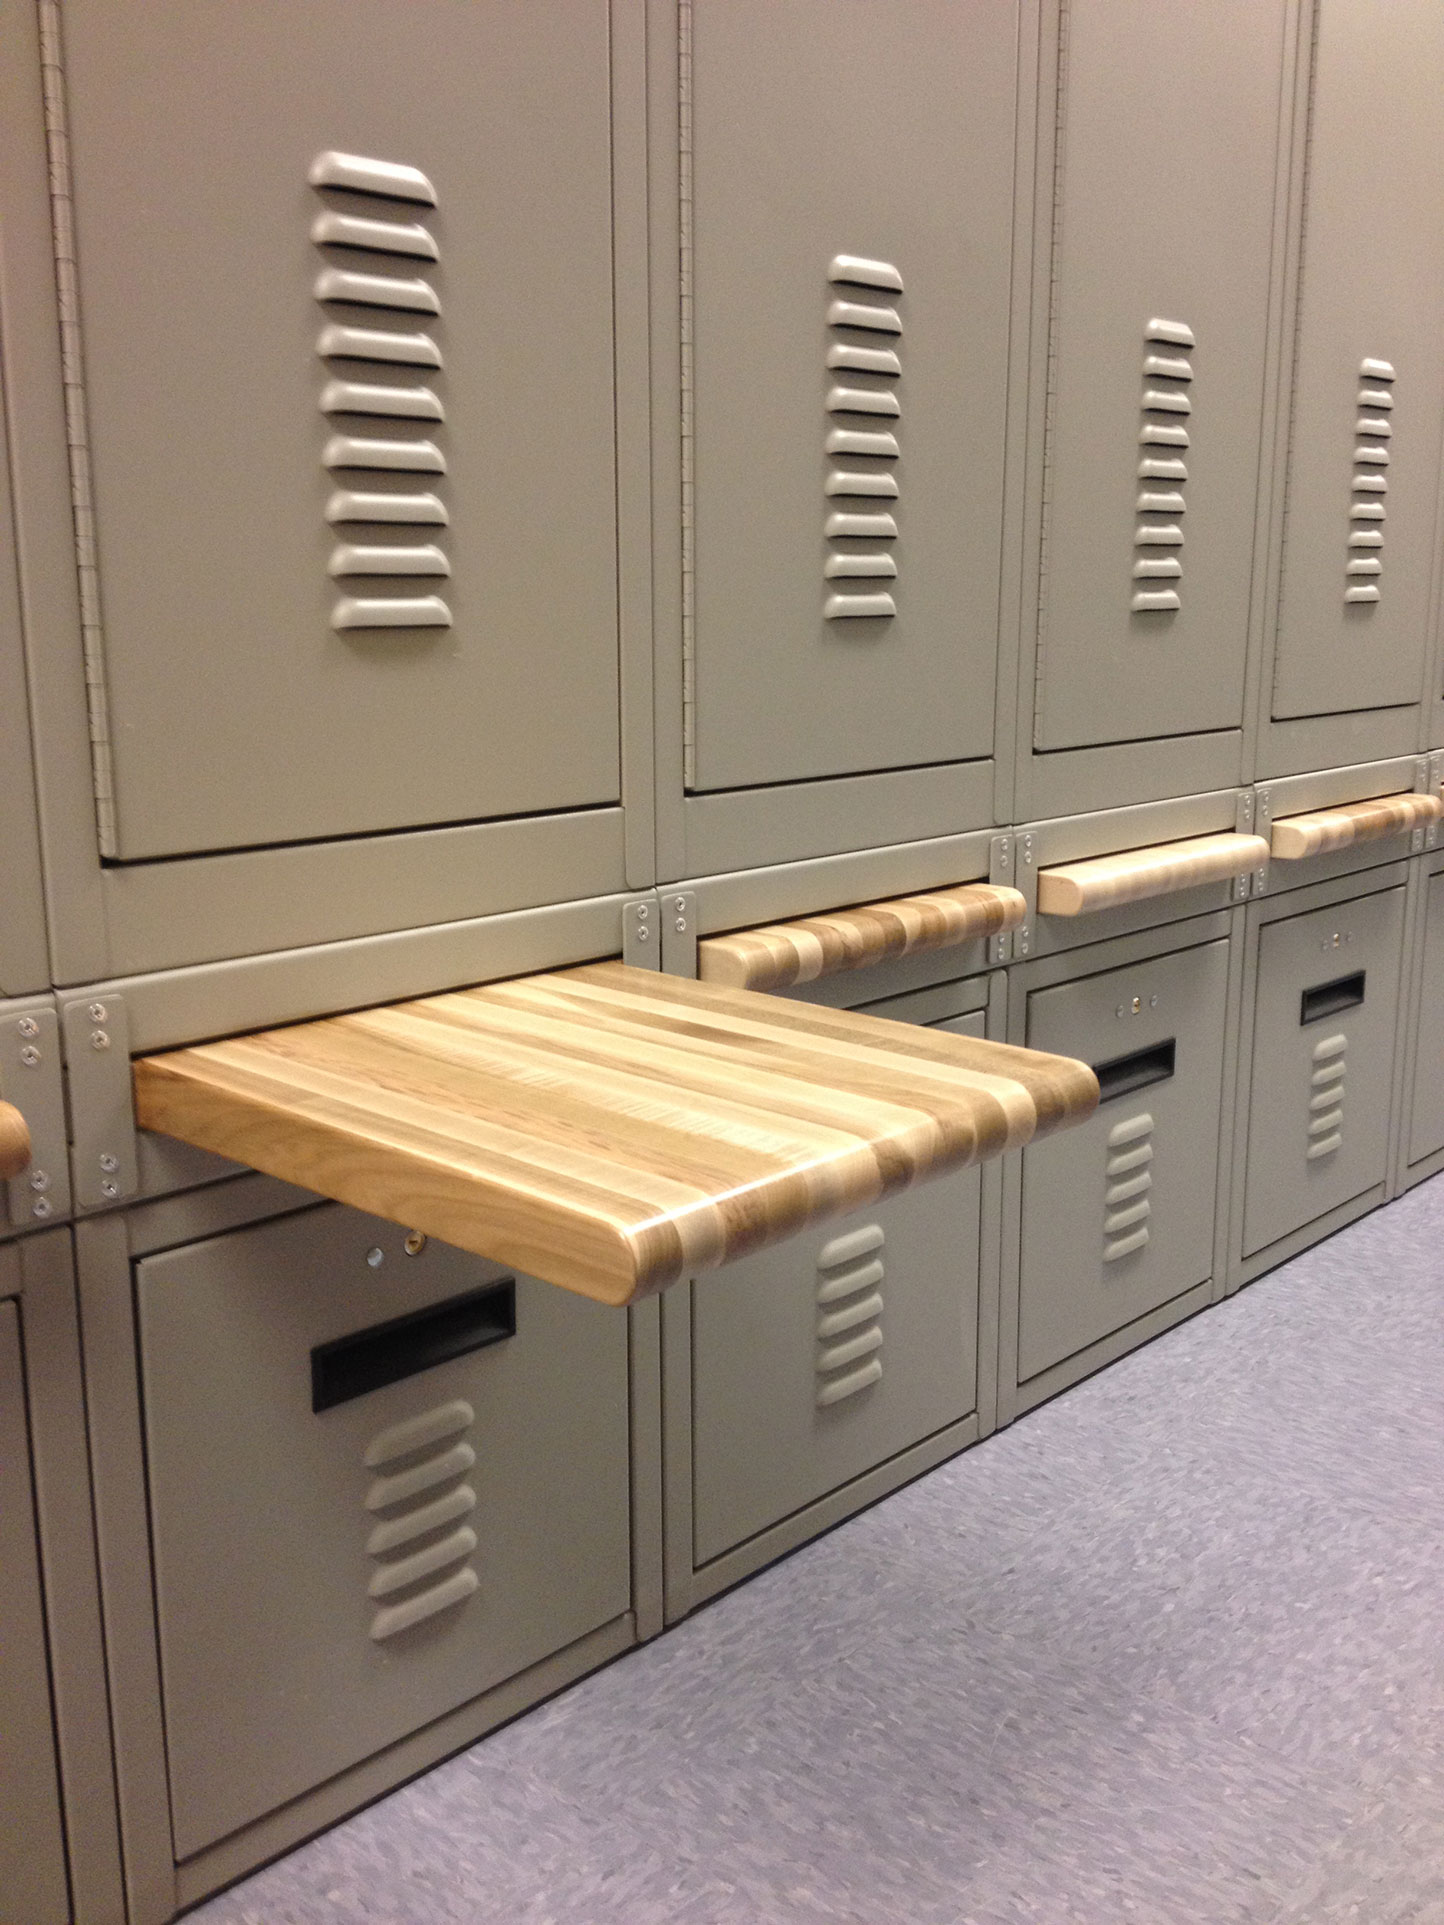 Retractable Breadboard Bench Lockers at East Mesa Reentry Facility